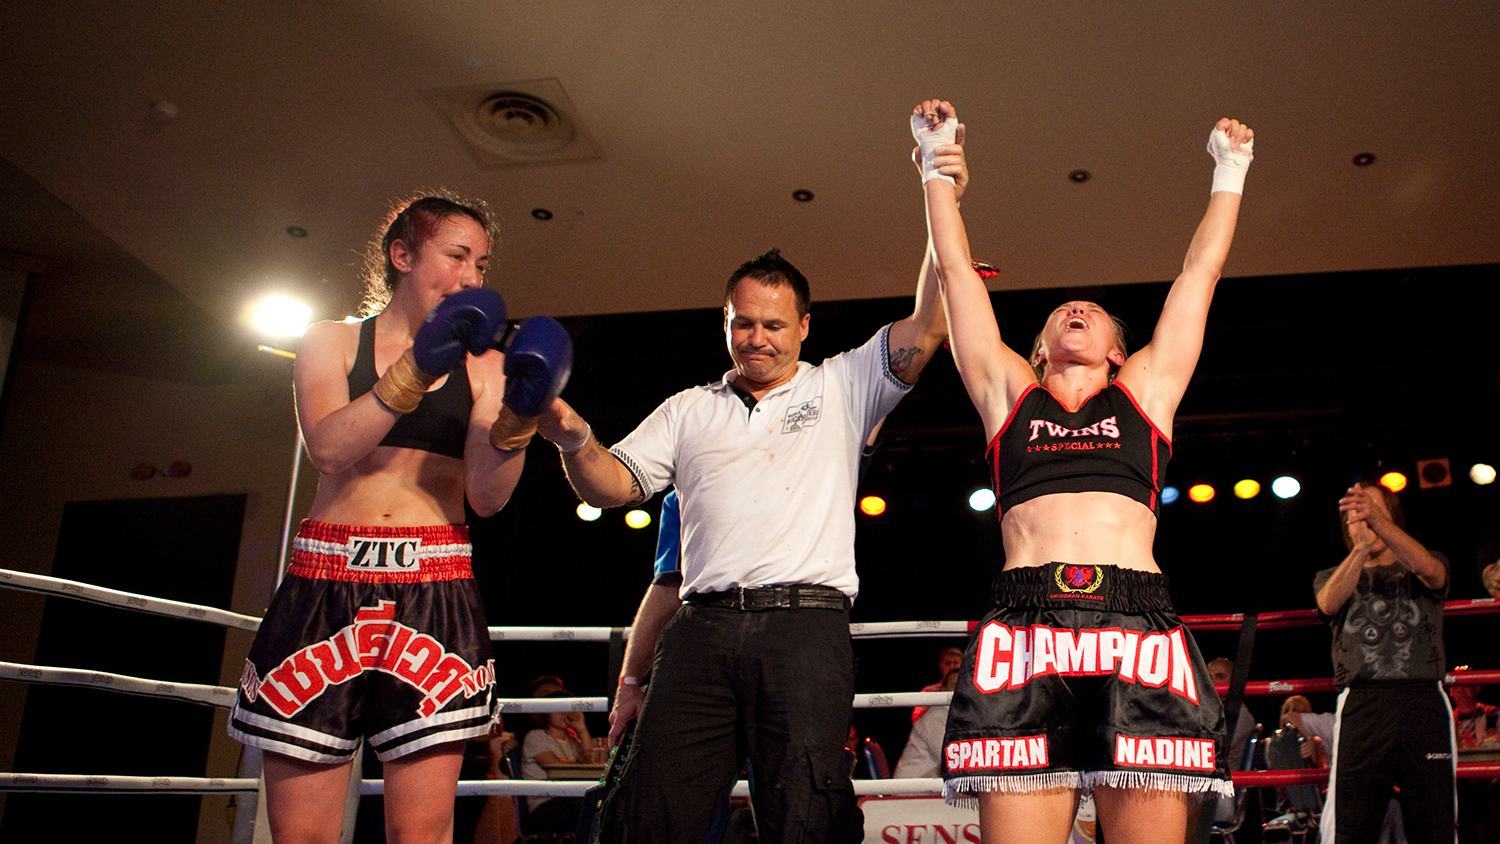 Nadine Champion - Wins